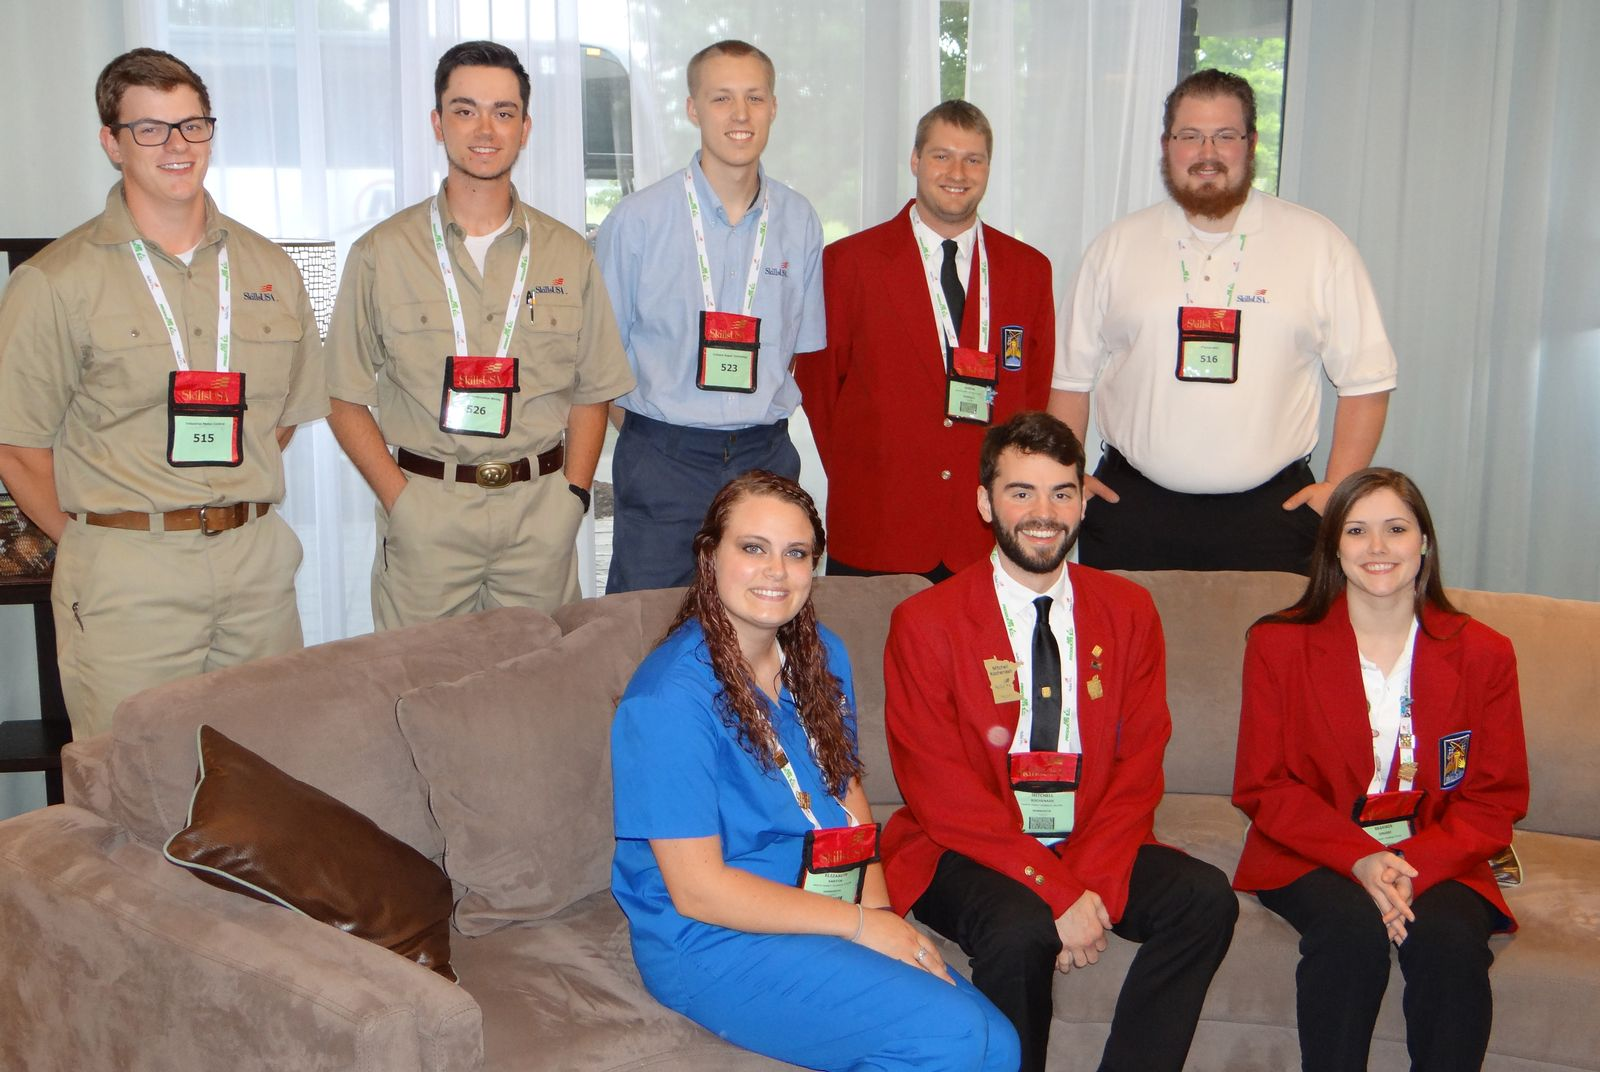 SkillsUSA Nationals Group Photo